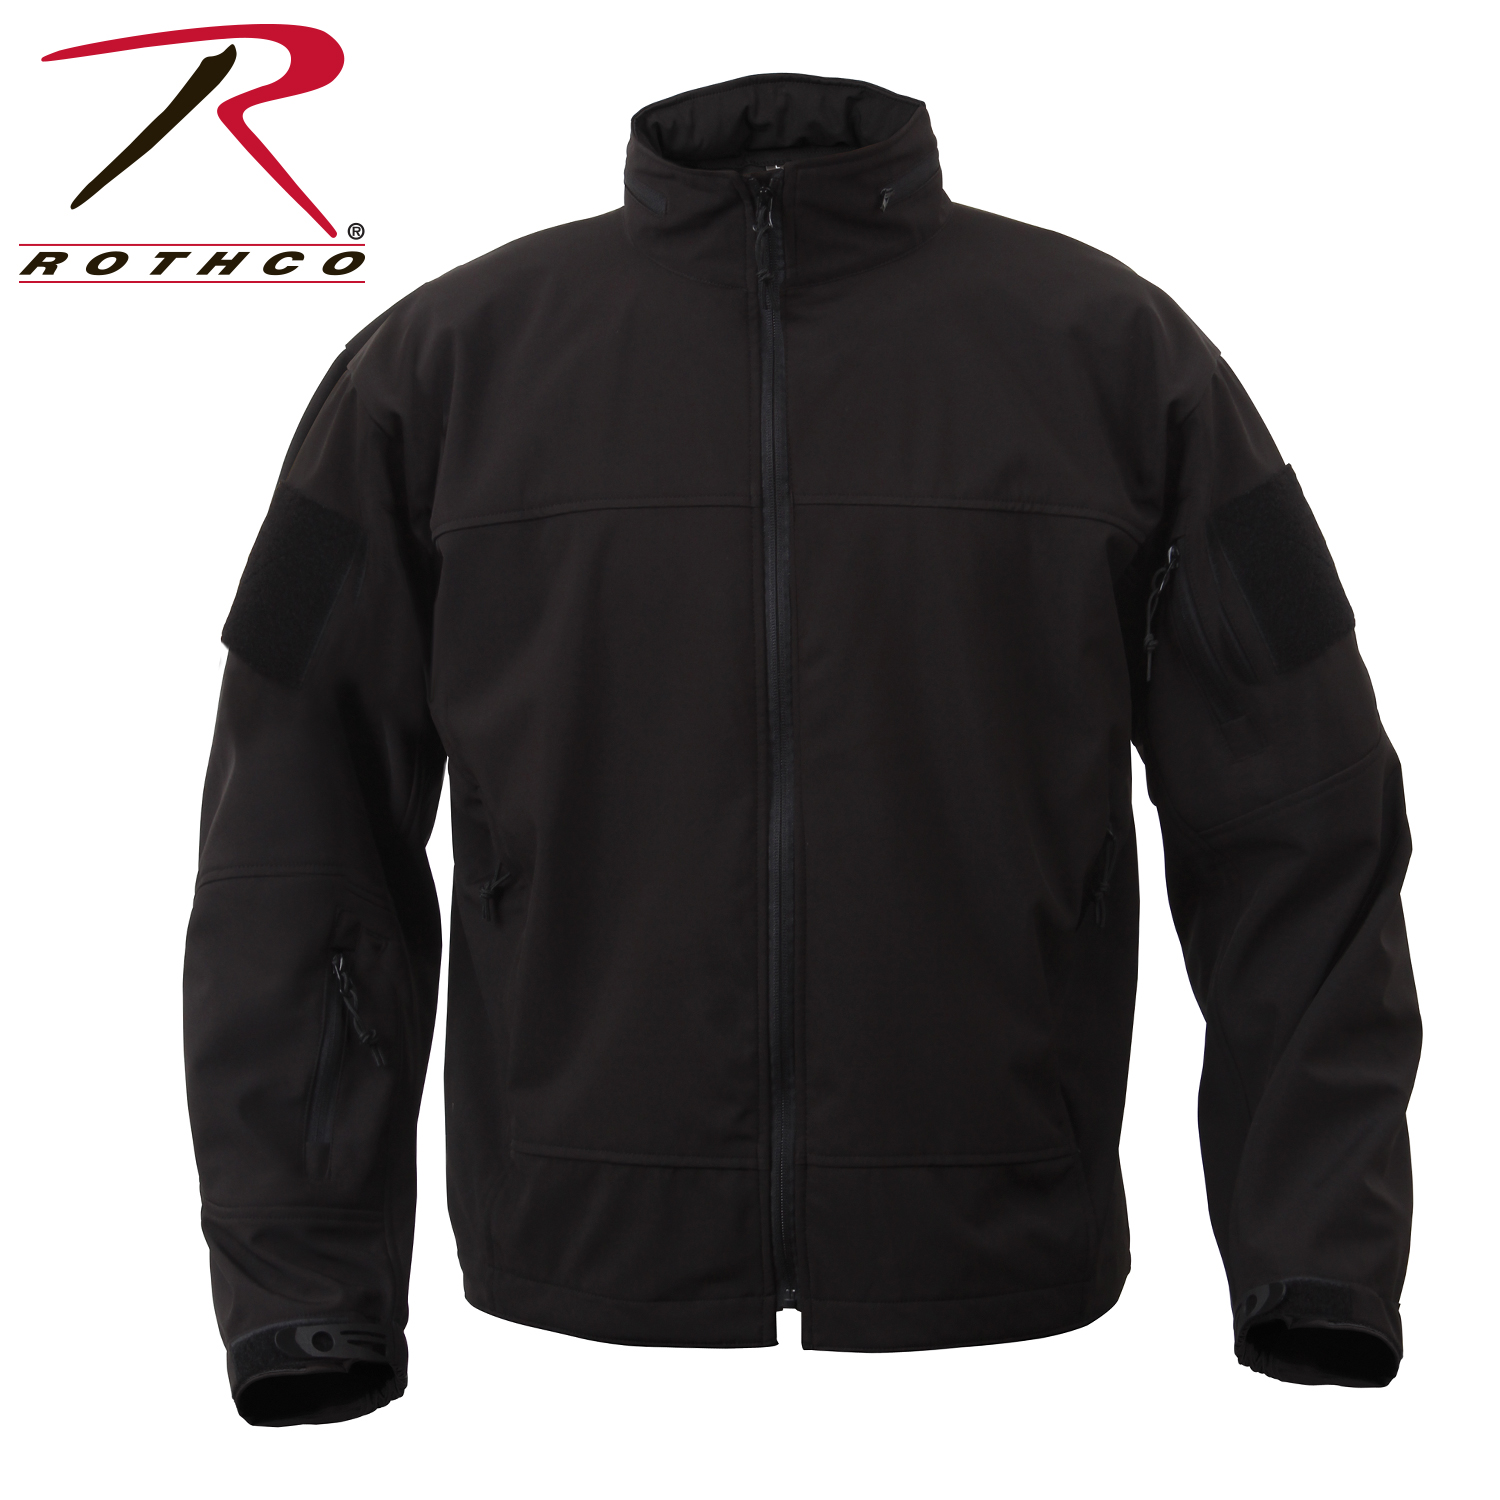 ae7986317 Rothco Covert Ops Light Weight Soft Shell Jacket